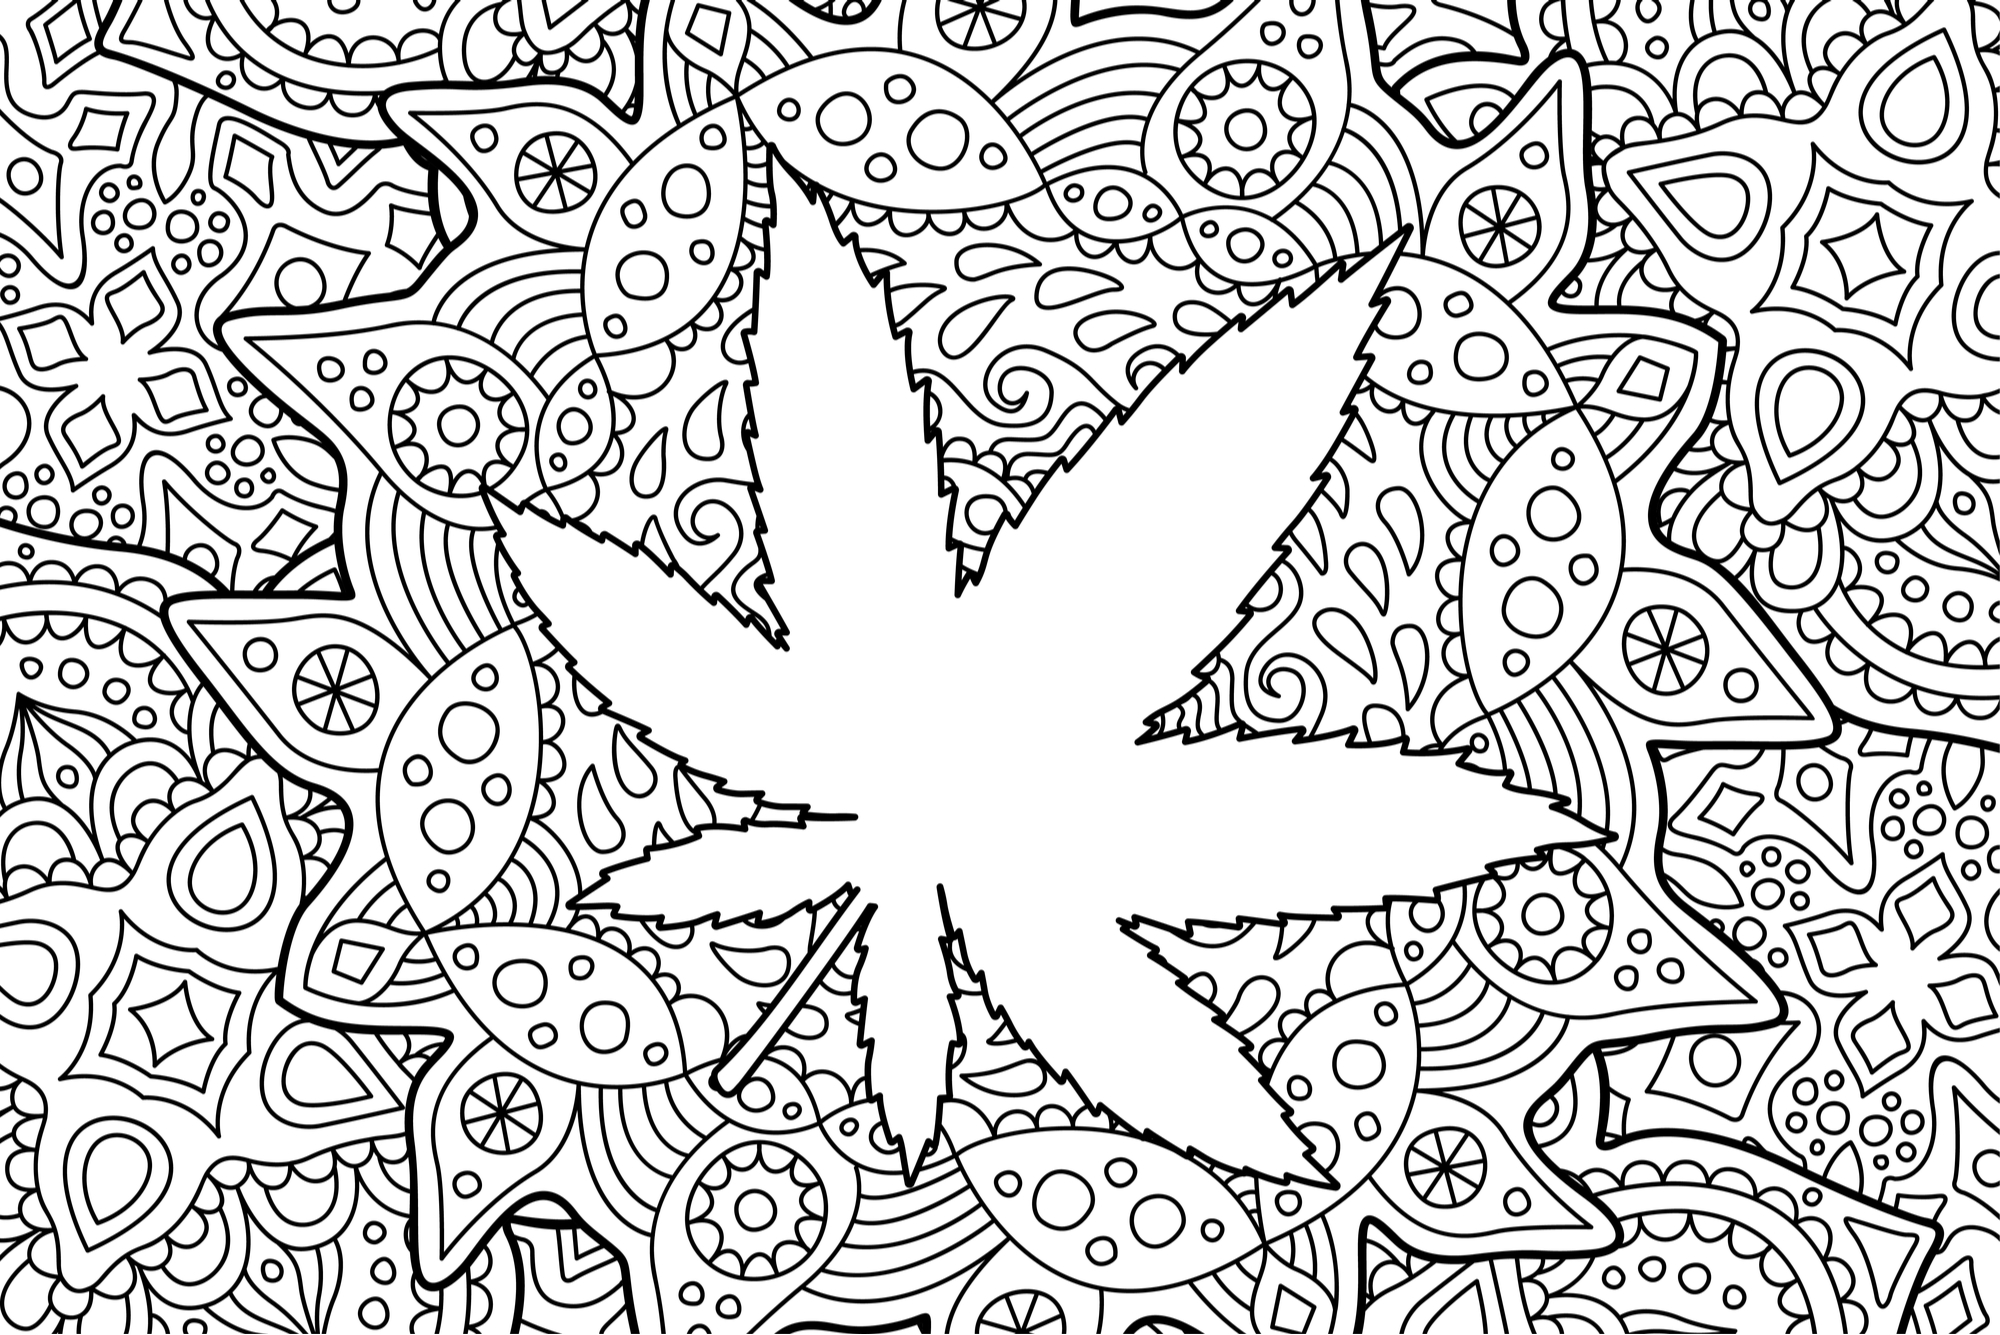 trippy pot leaf coloring pages weed coloring pages trippy drawings tattoo free pot pages trippy leaf coloring